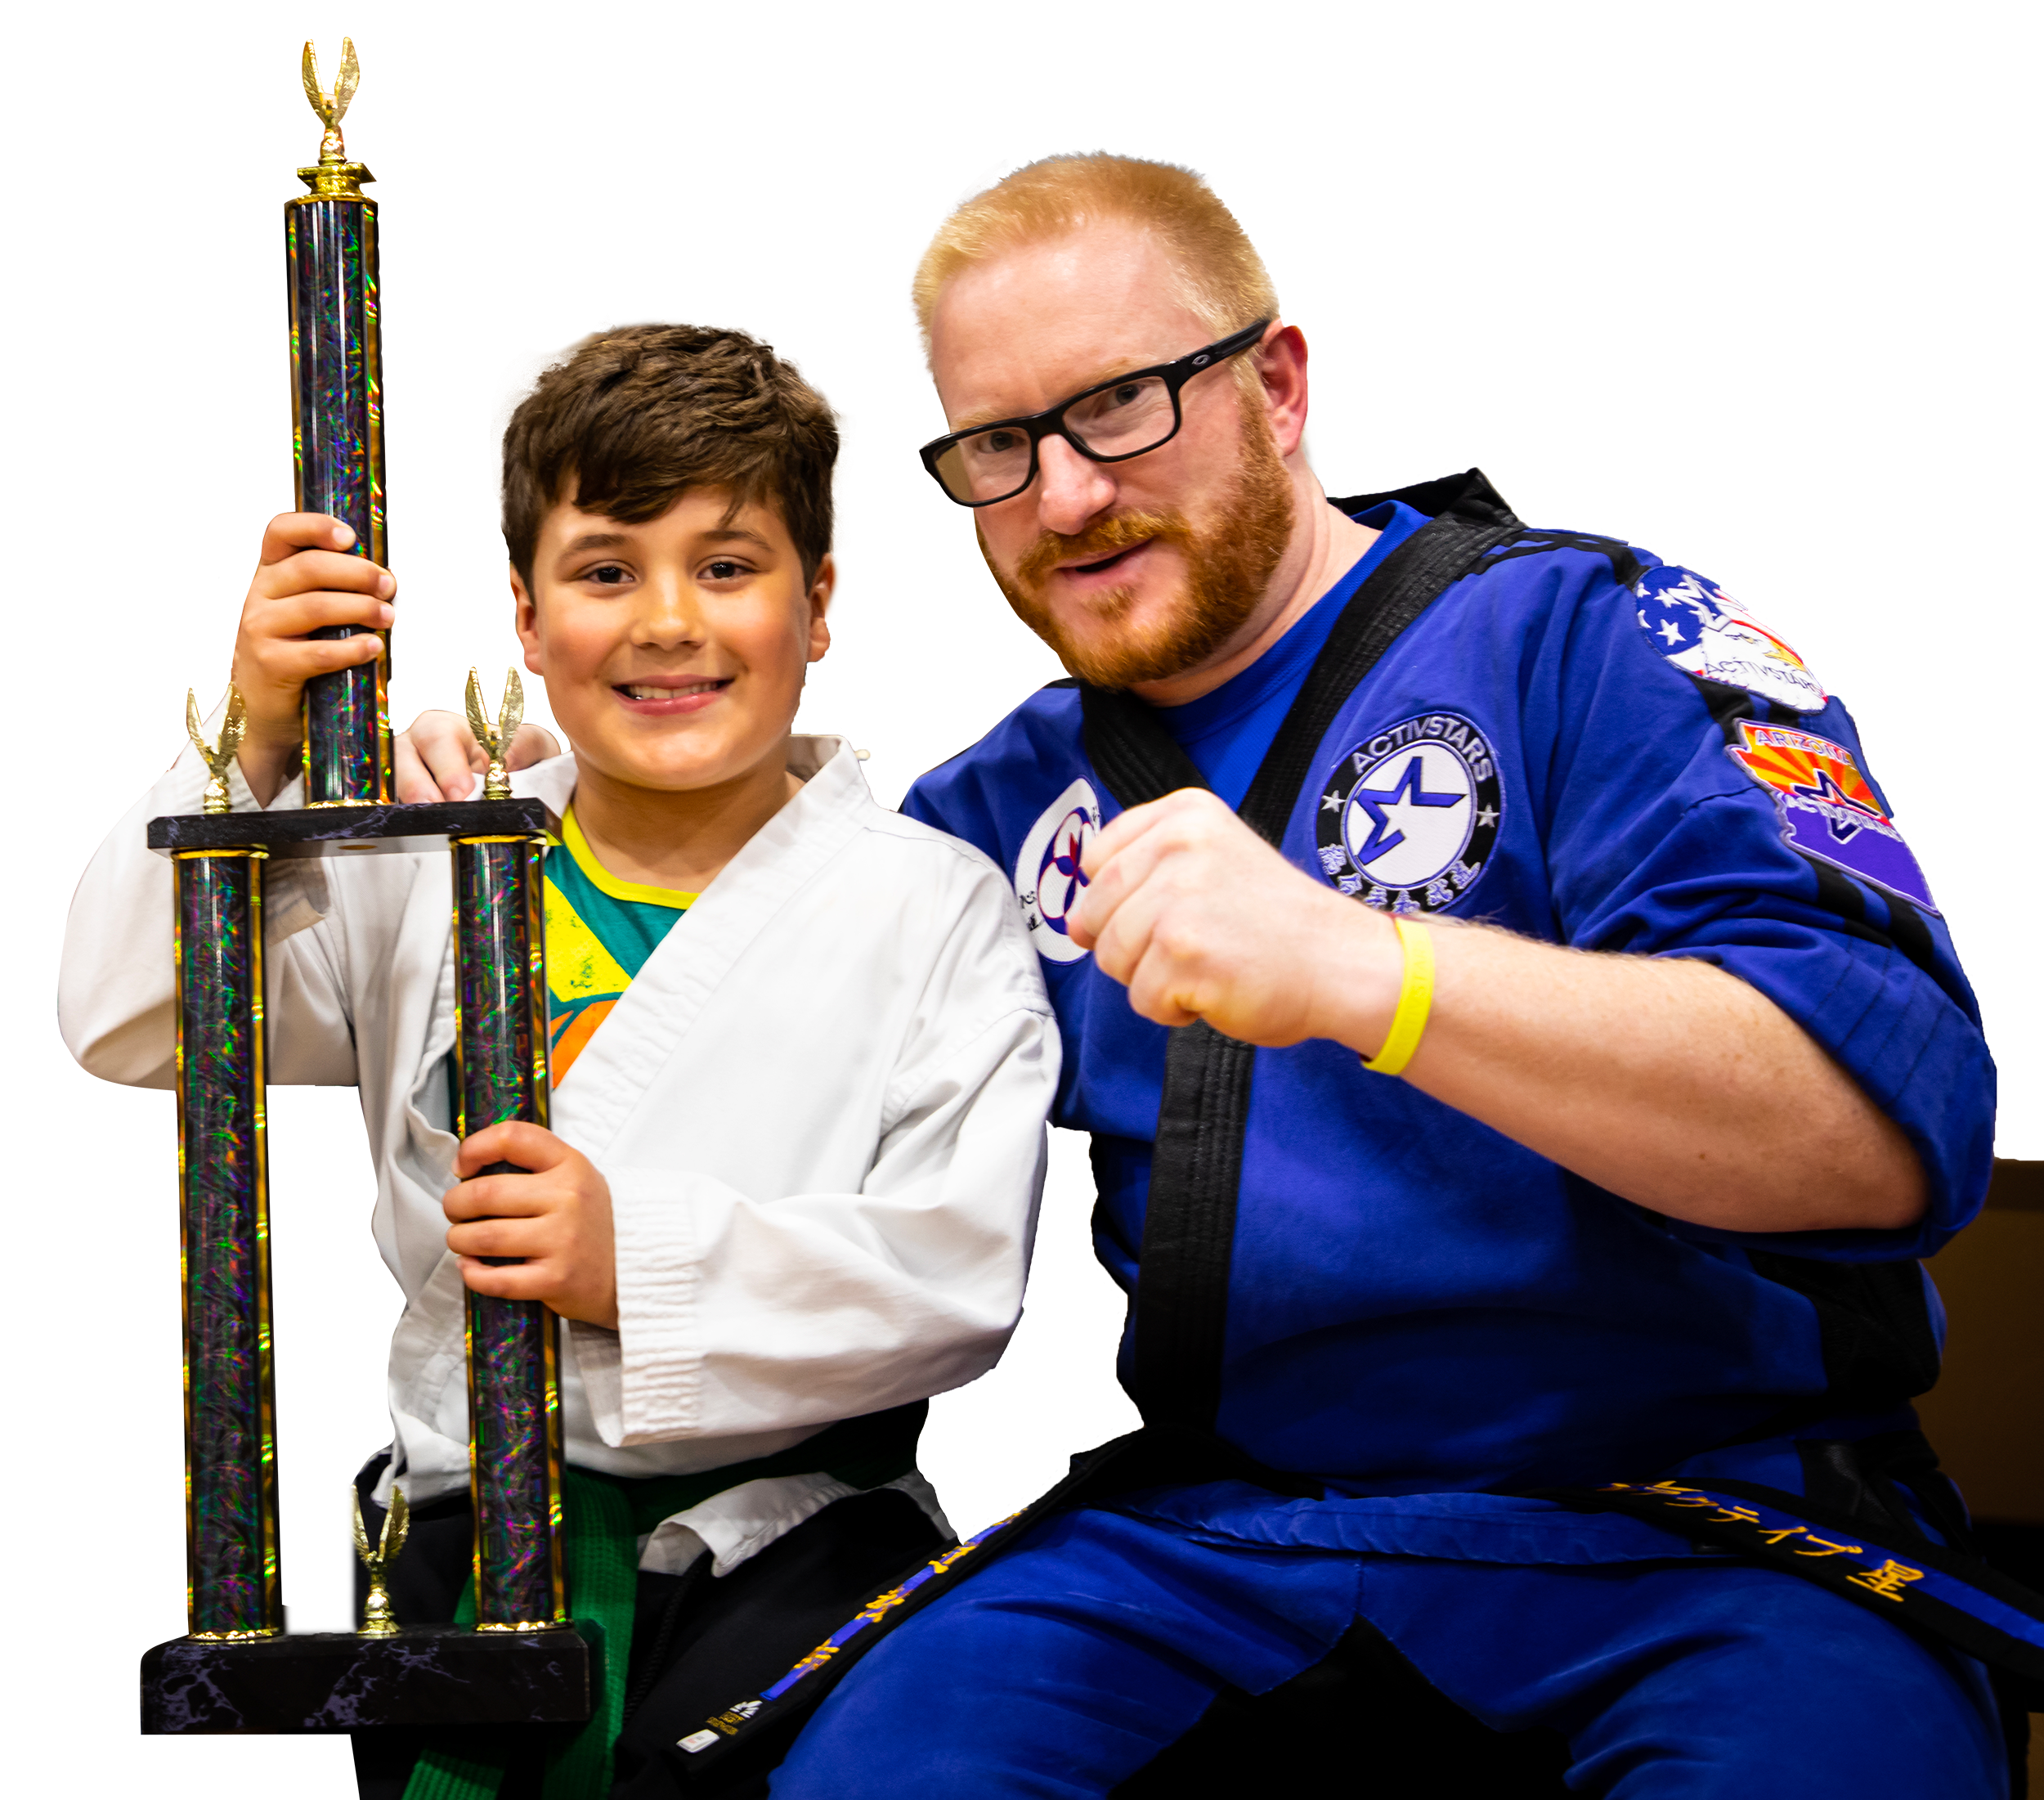 Student with Trophy and Instructor